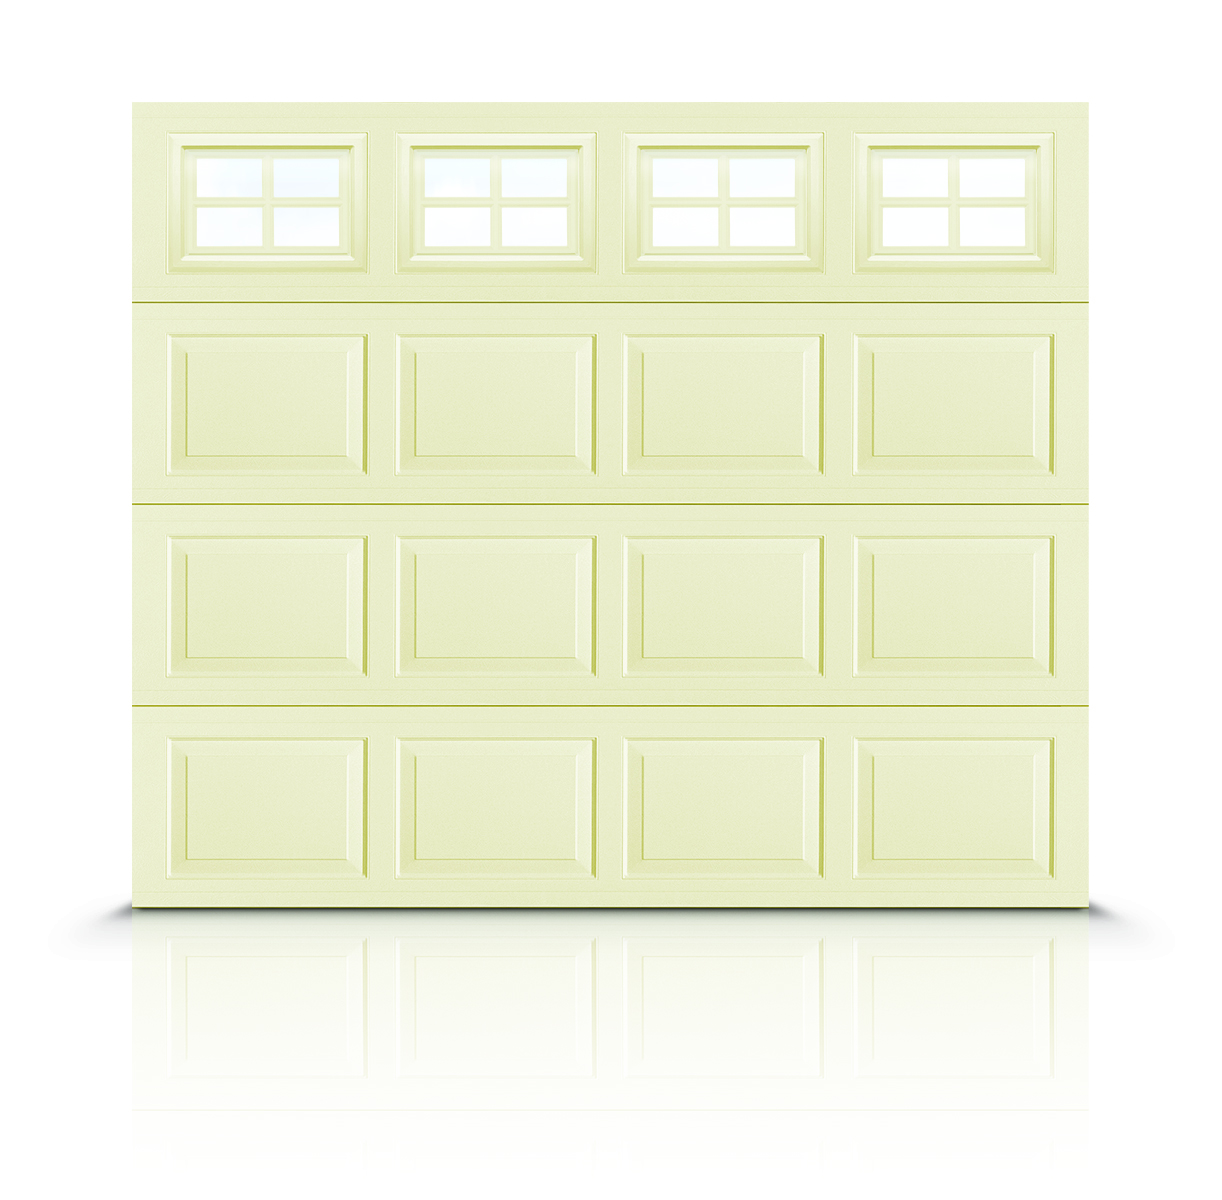 Richards wilcox quality doors national overhead door for Quality doors